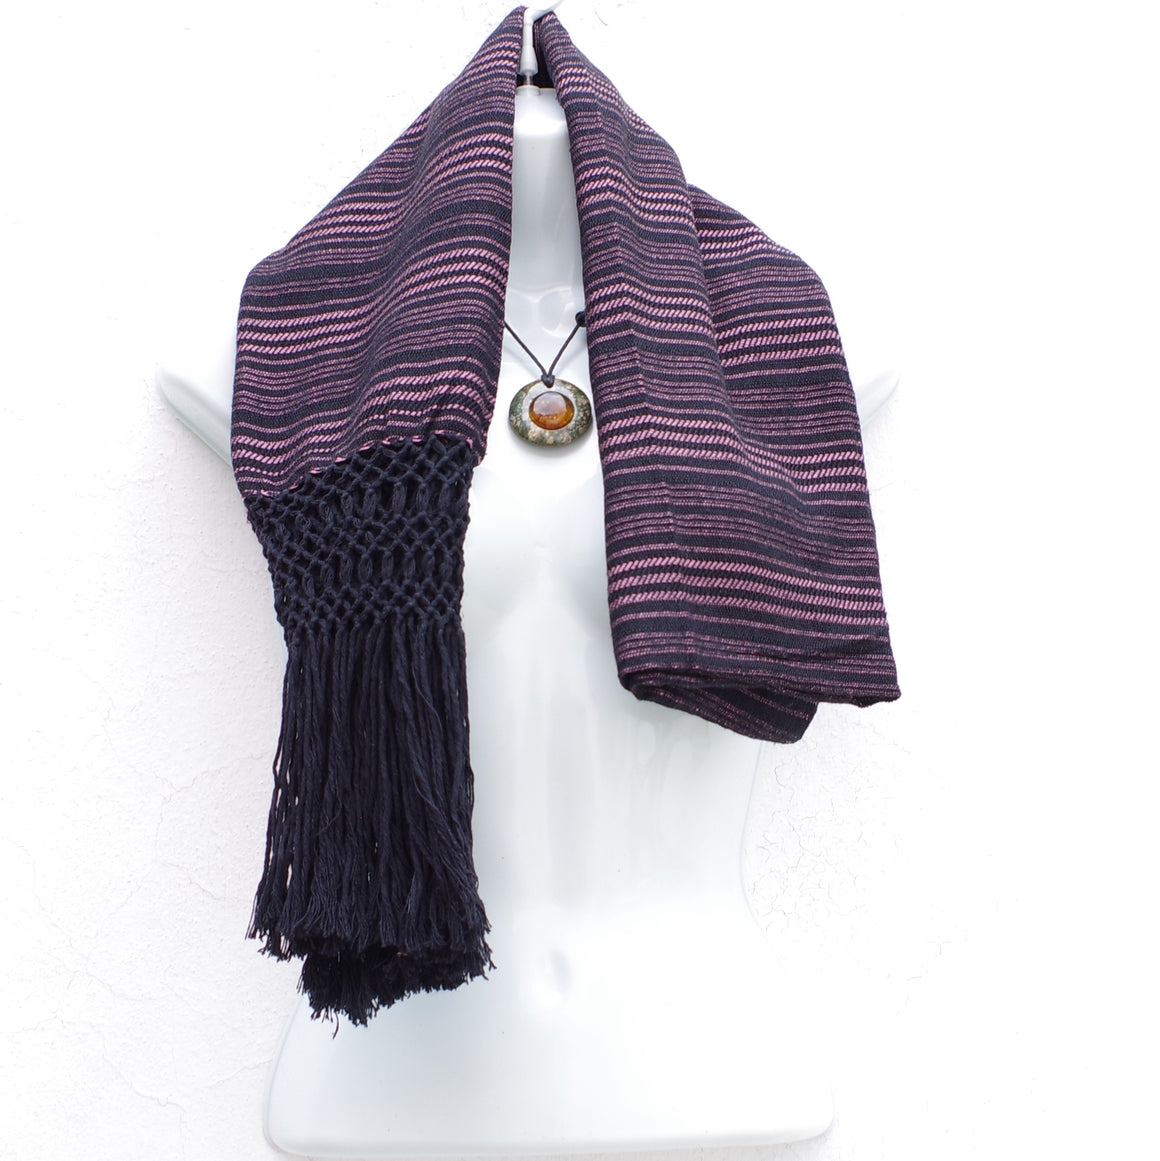 Mayan Copal Black and Pink Mexican Rebozo Shawl with Fringes Embroidered with Cotton and Yard